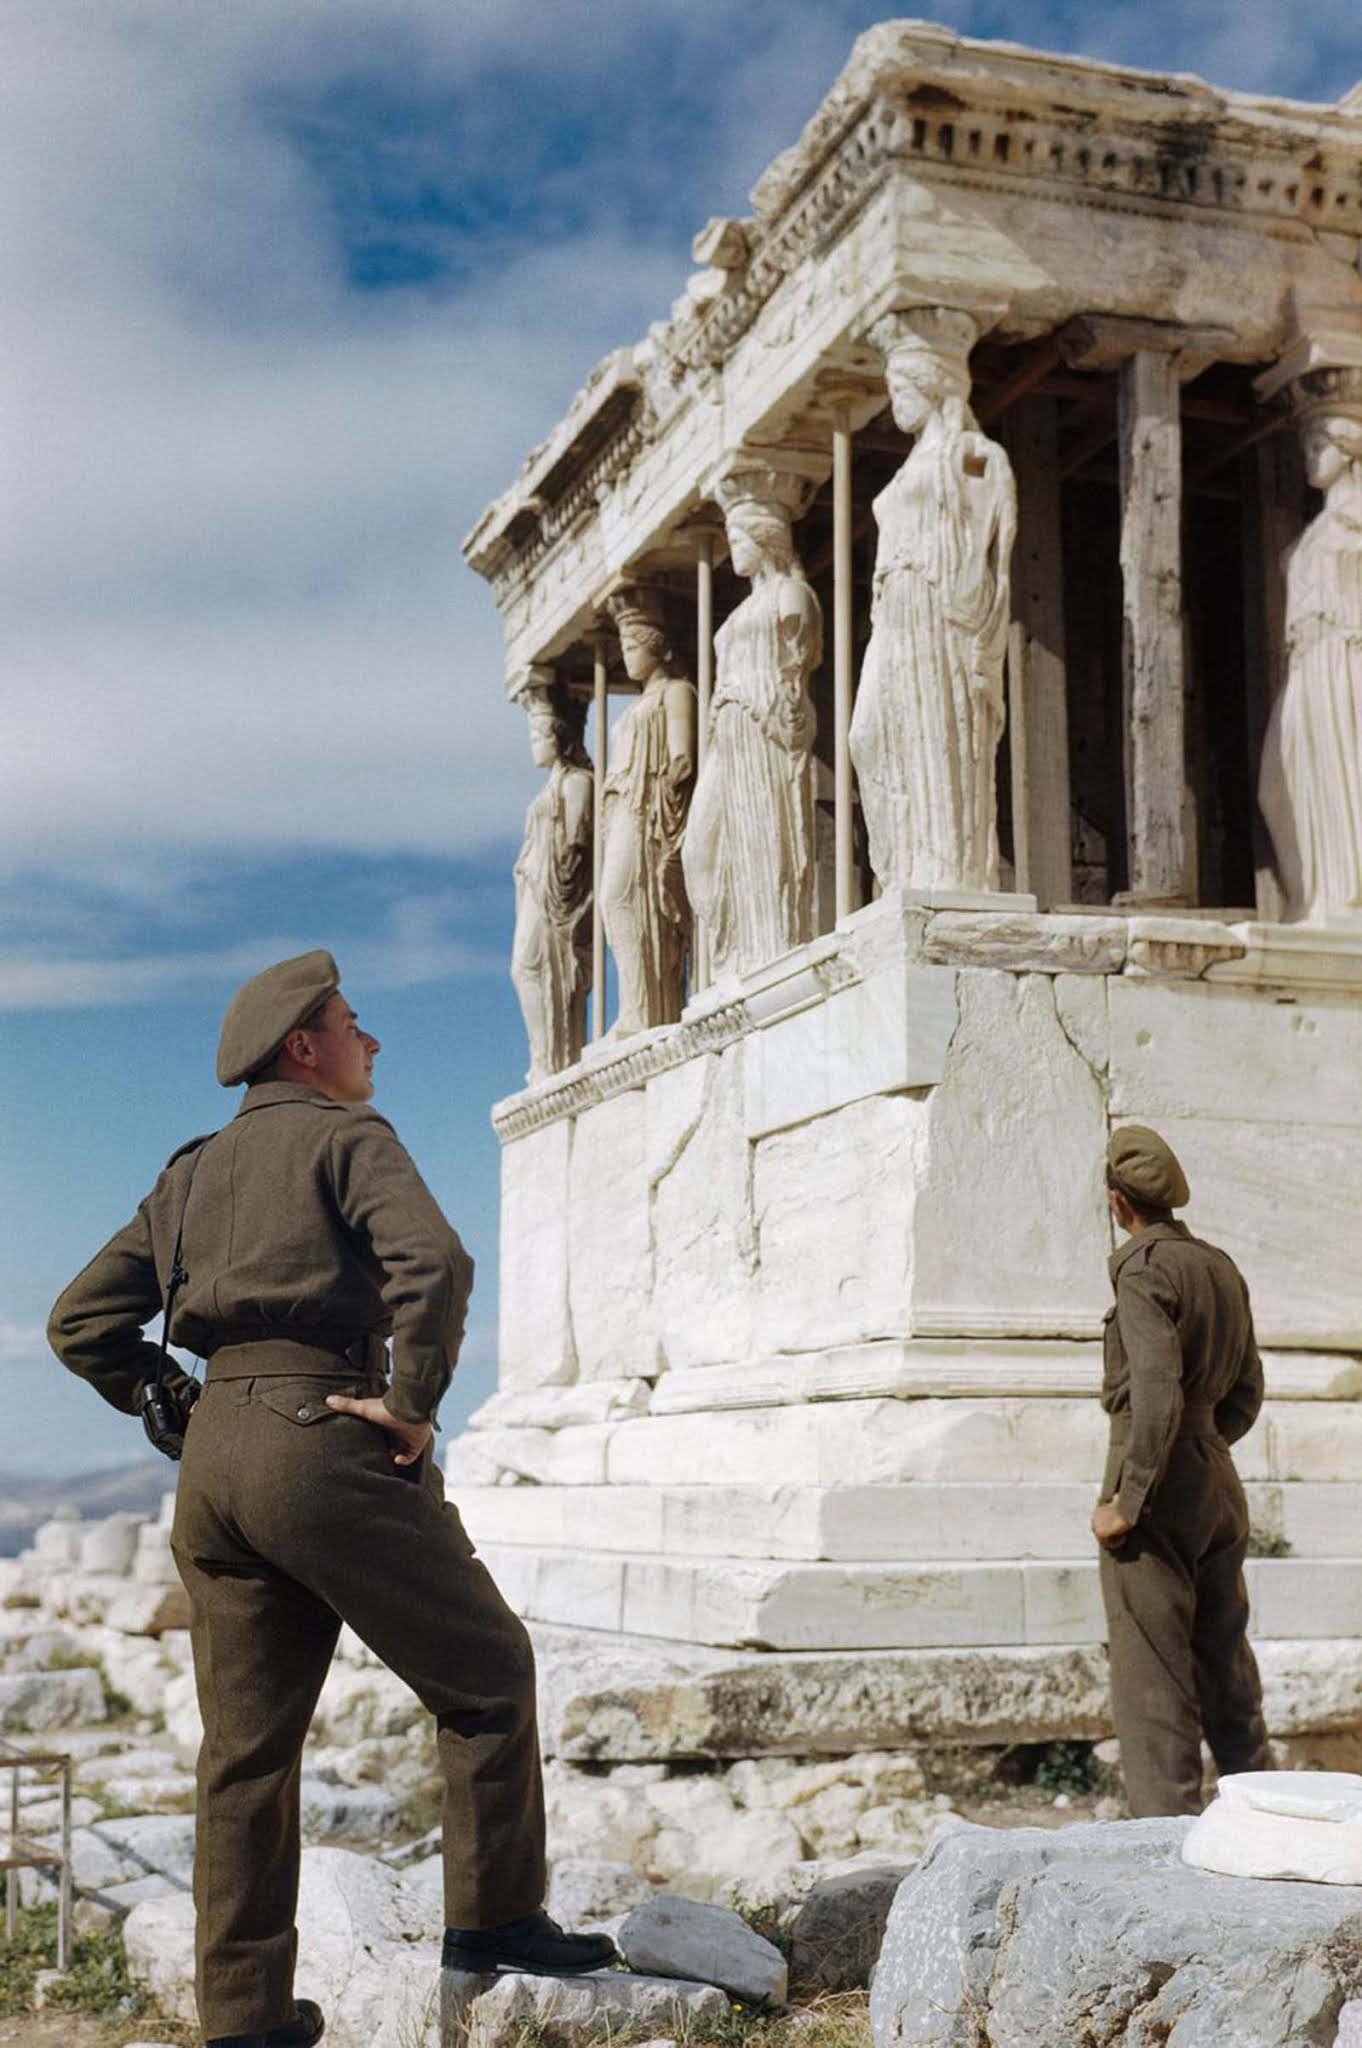 British soldiers admire the Caryatids on the Acropolis while sightseeing in Athens. 1944.